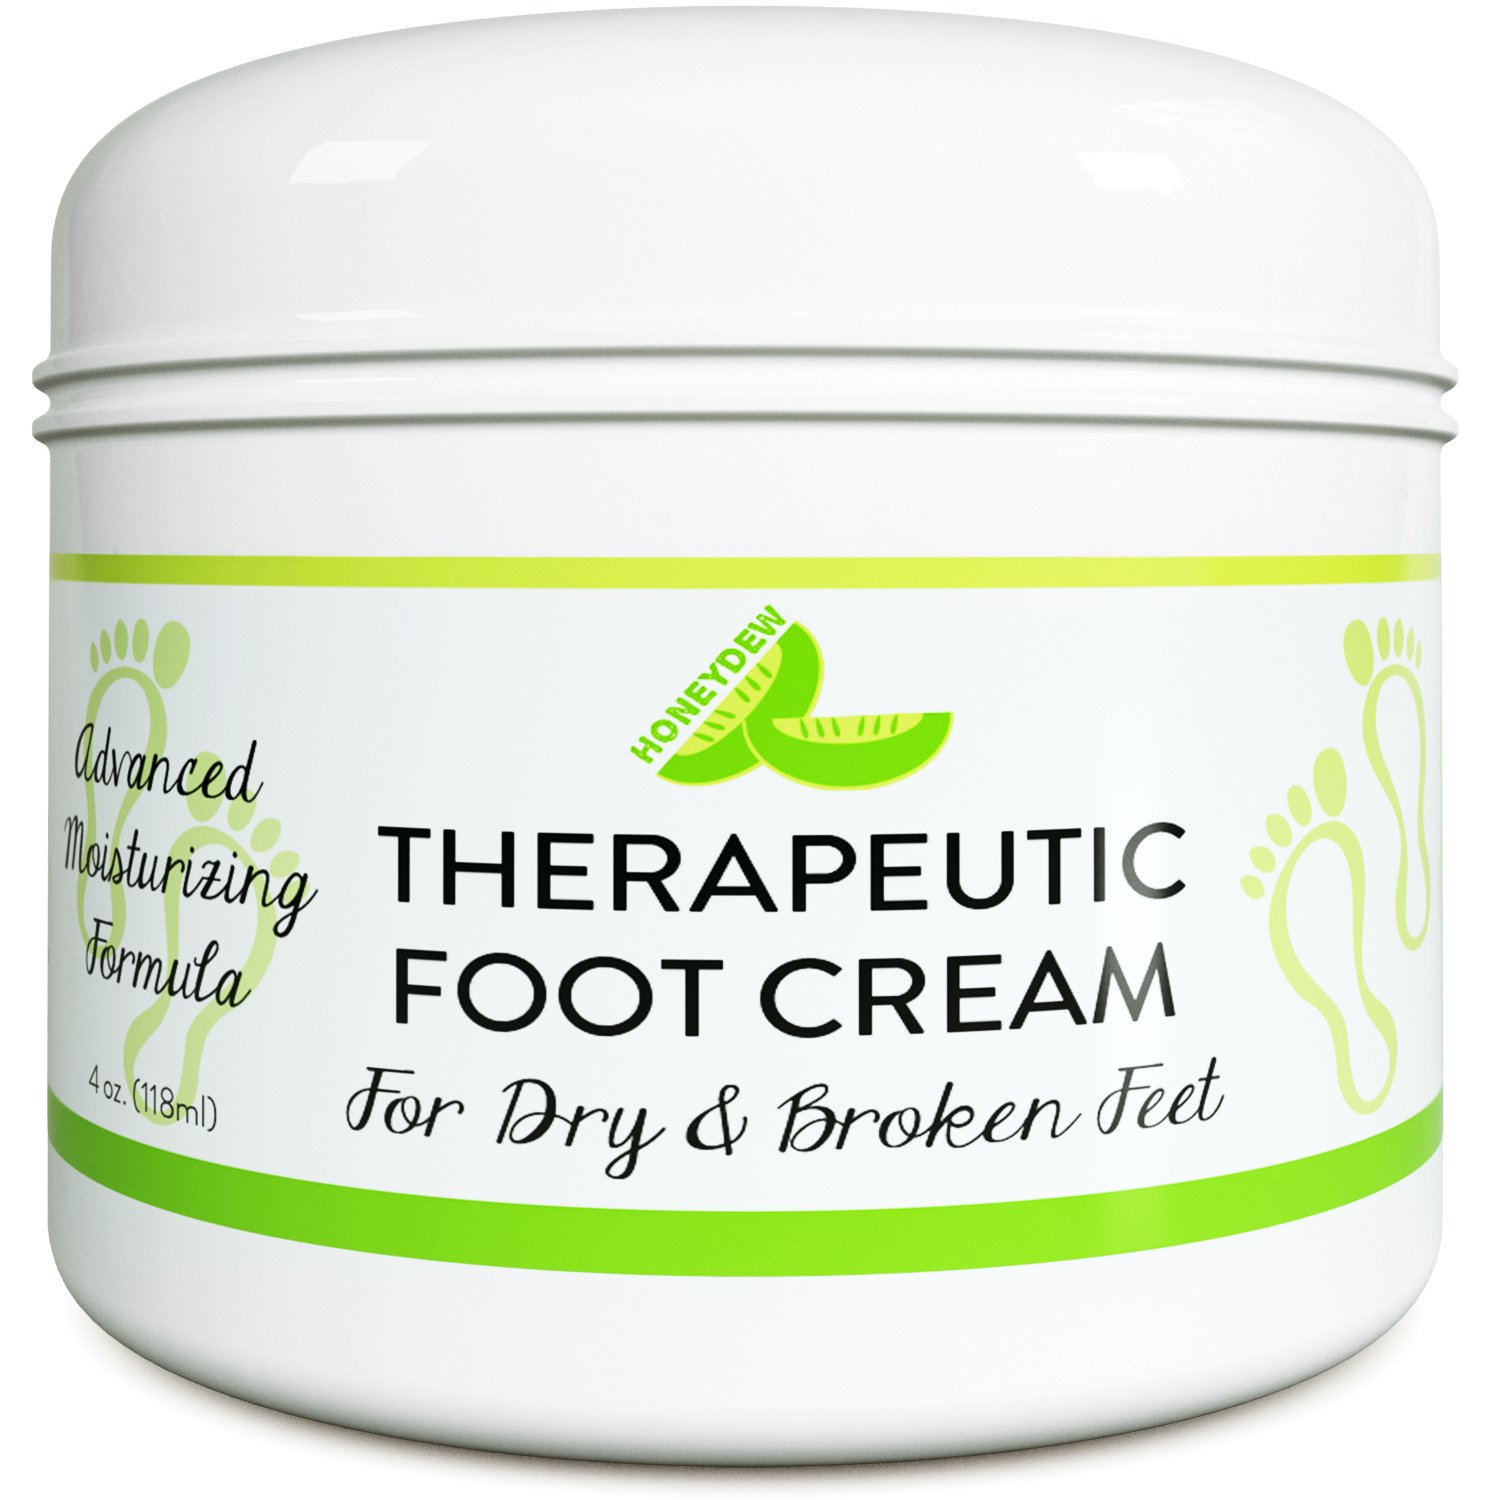 All Natural Shea Butter Moisturizing Foot Cream for Dry and Cracked Feet – Foot Care Lotion for Cracked Heels – Ultra- Hydrating Cream with Coconut Oil and Jojoba for Men and Women – 4oz – By HoneyDew by Honeydew (Image #2)